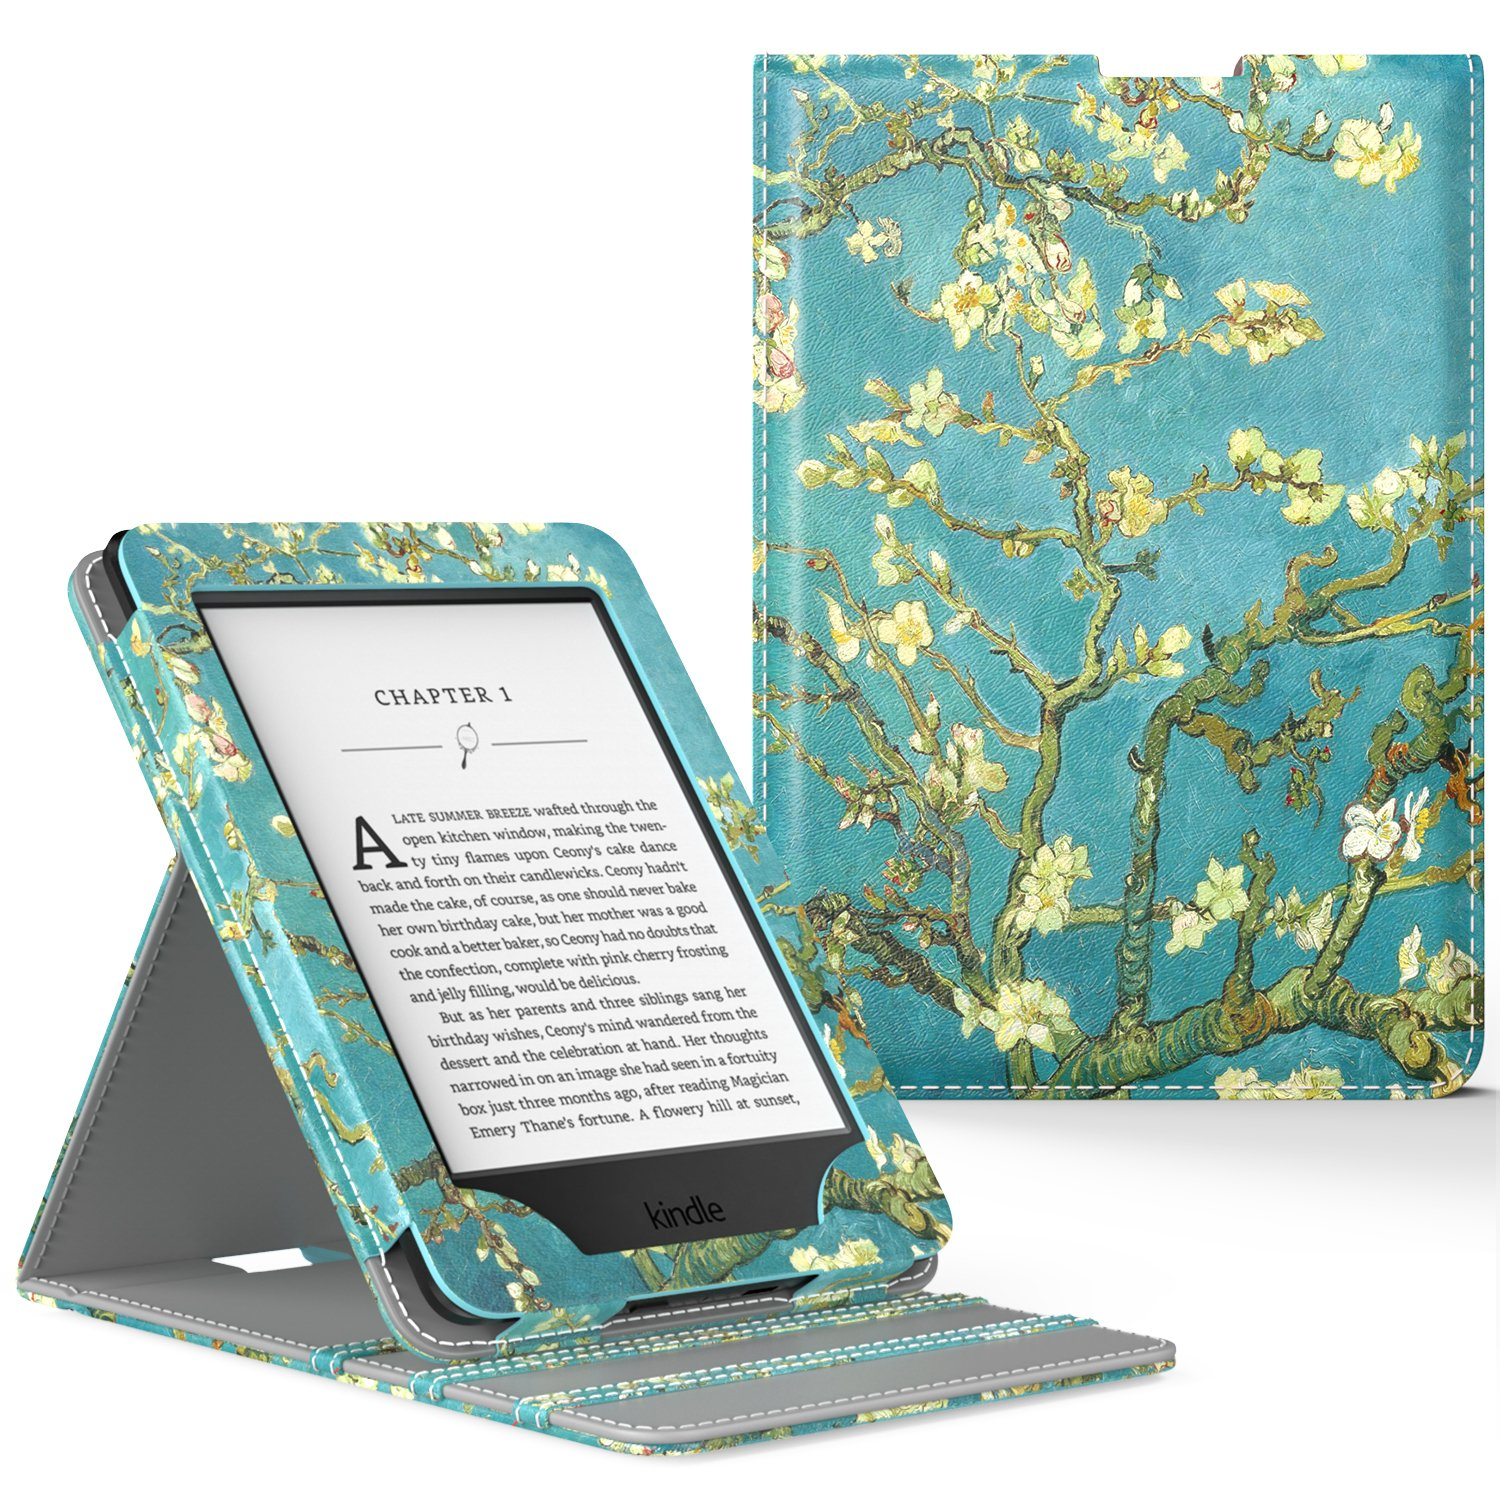 MoKo Case for Kindle Paperwhite, Premium Vertical Flip Cover with Auto Wake / Sleep for Amazon All-New Kindle Paperwhite (Fits All 2012, 2013, 2015 and 2016 Versions), Almond Blossom